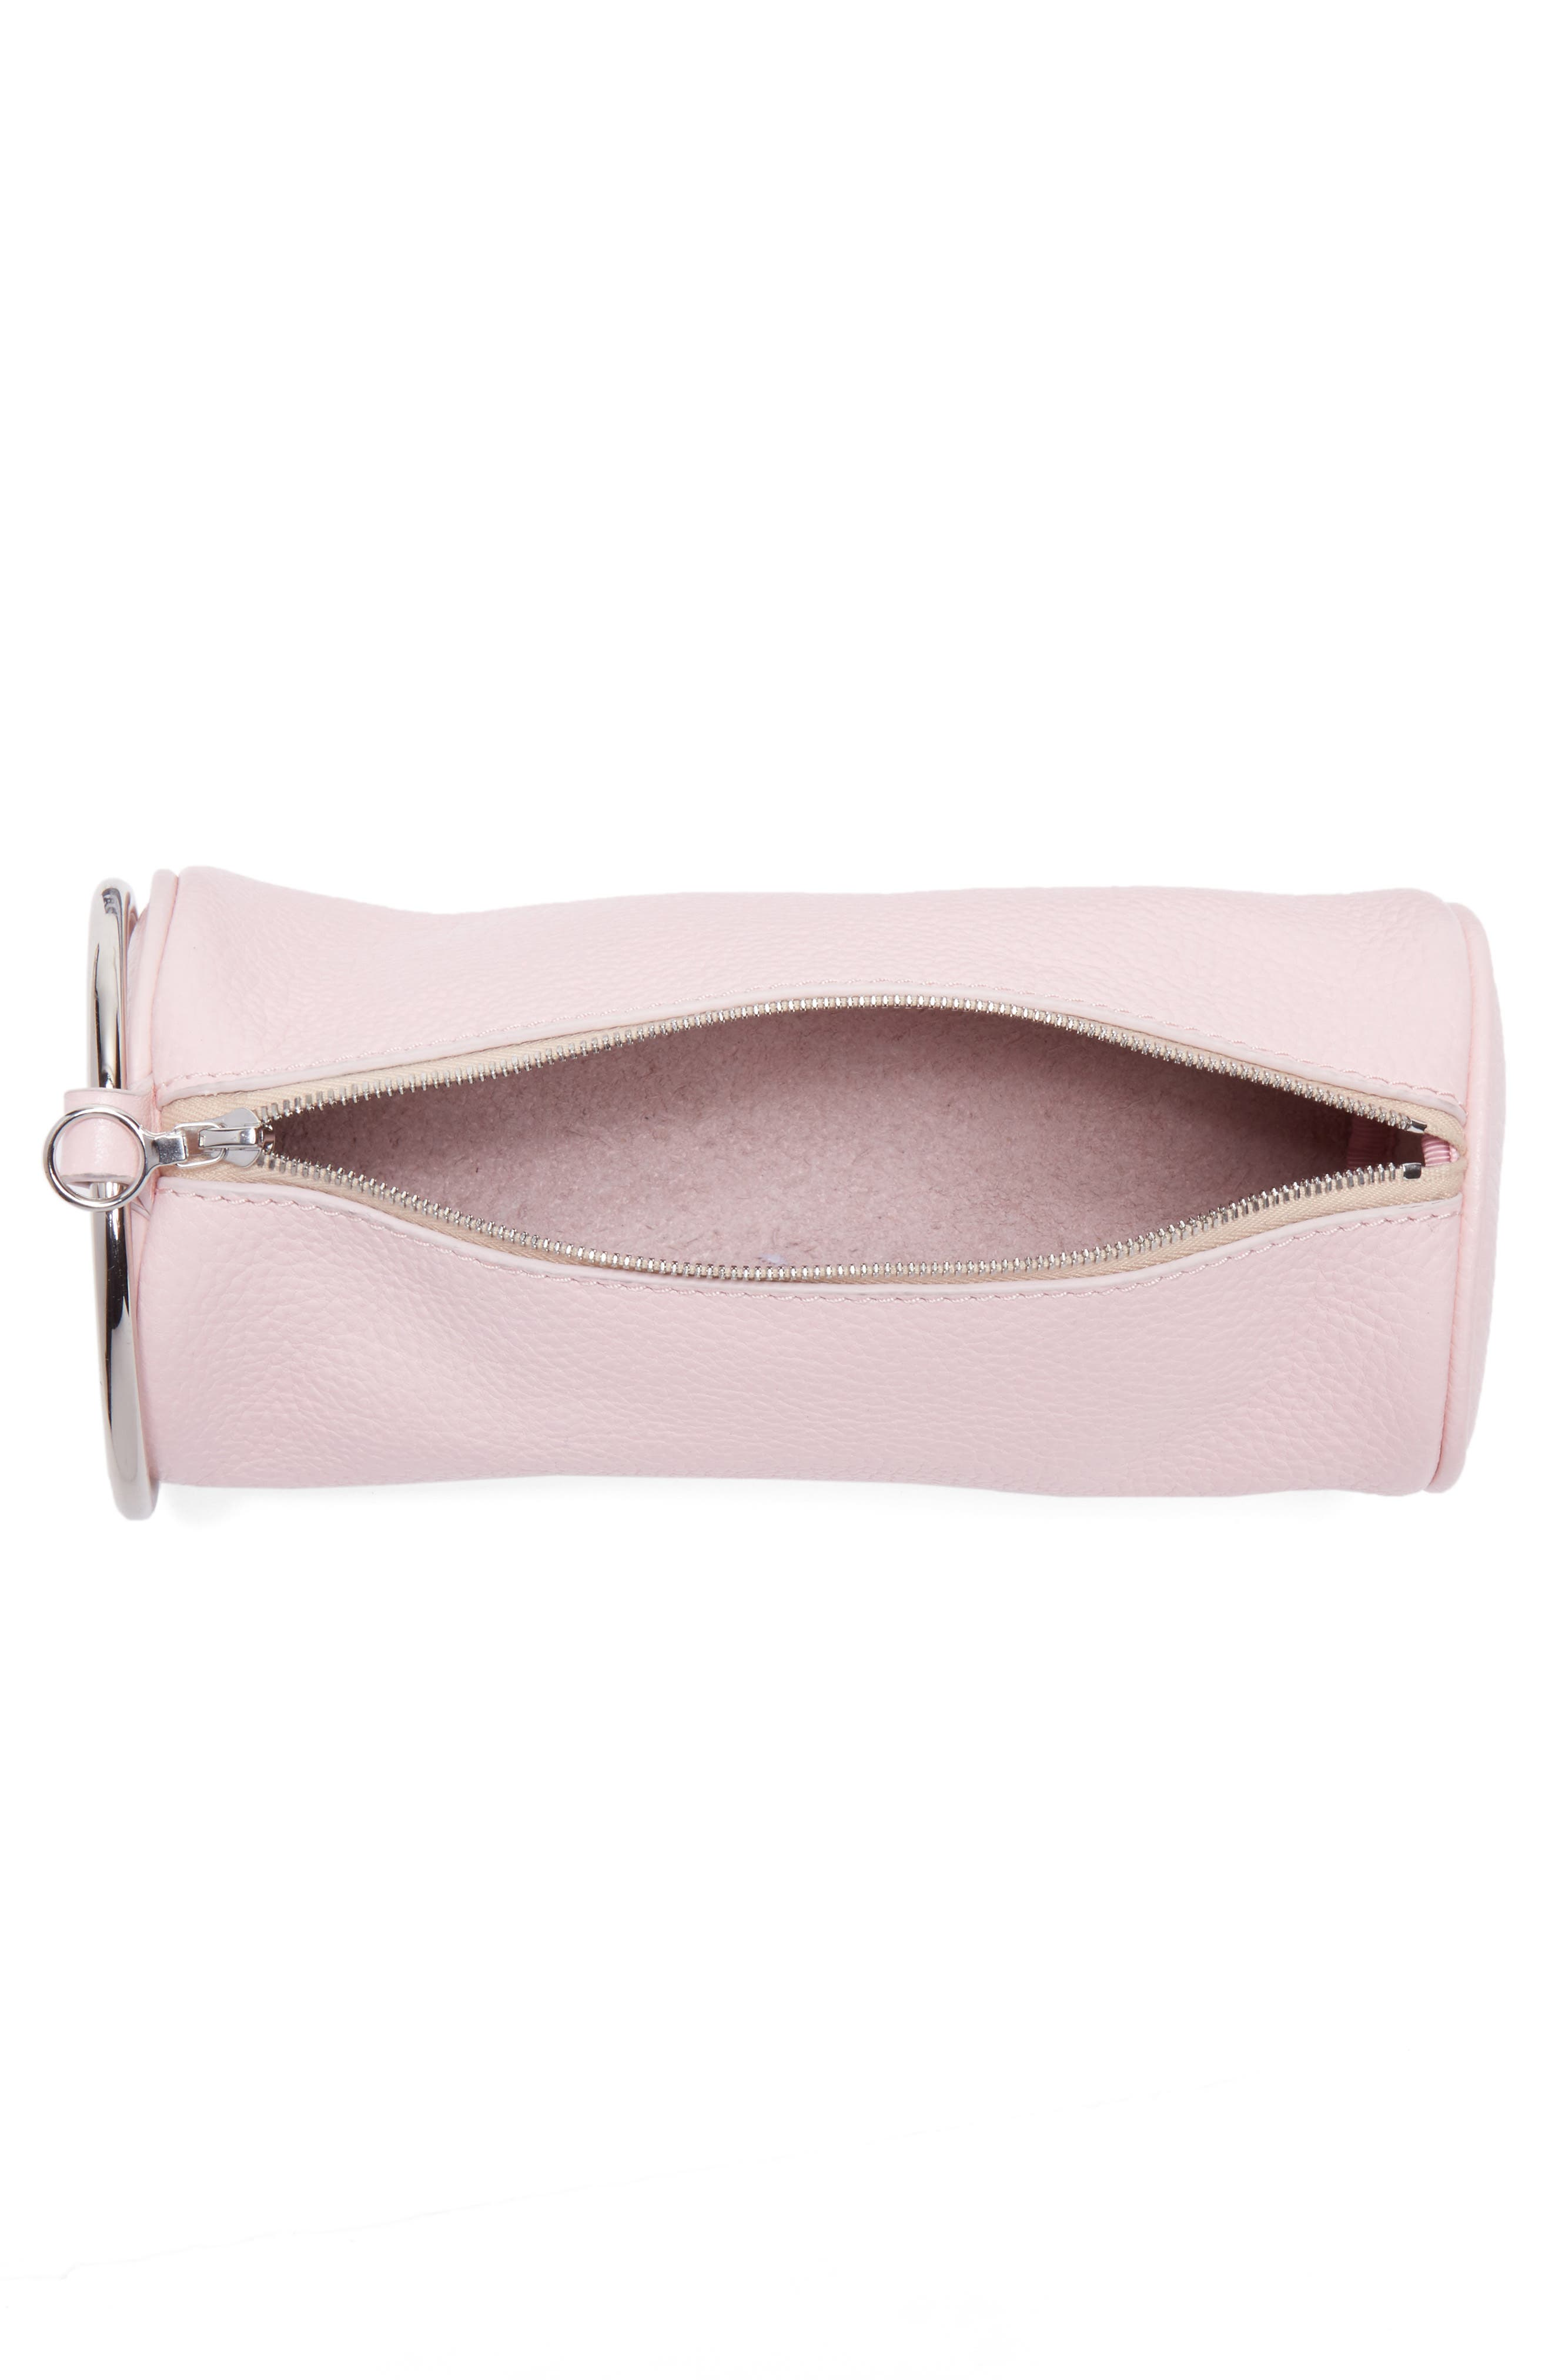 Pebbled Leather Duffel Wristlet Clutch,                             Alternate thumbnail 4, color,                             Blush Pink